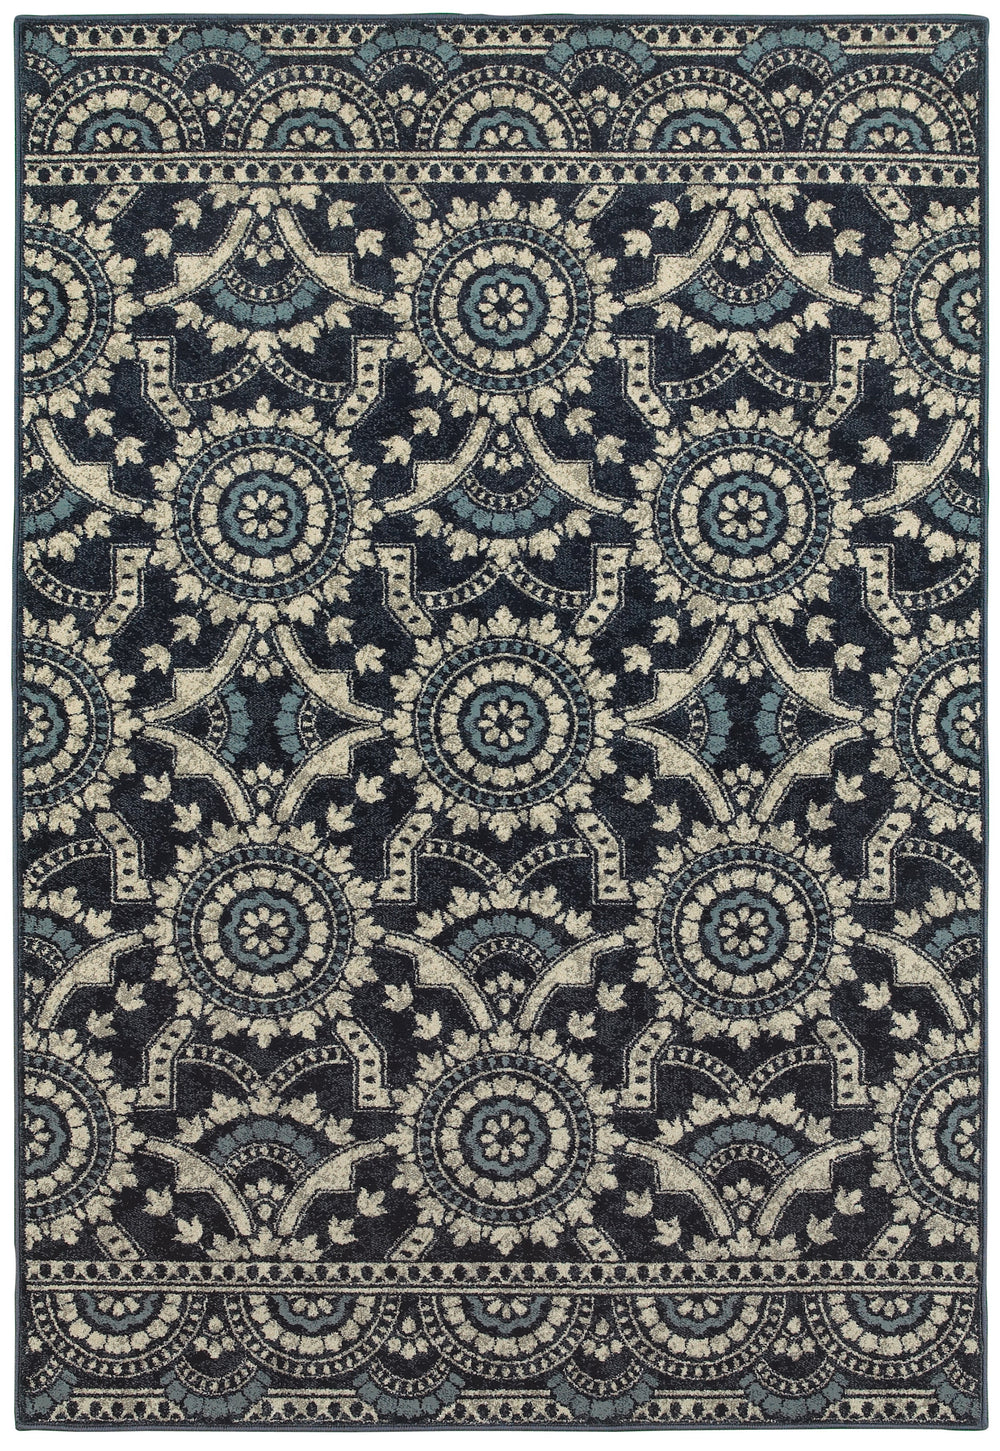 Oriental Weavers Linden 7842 Area Rug Rug Savings